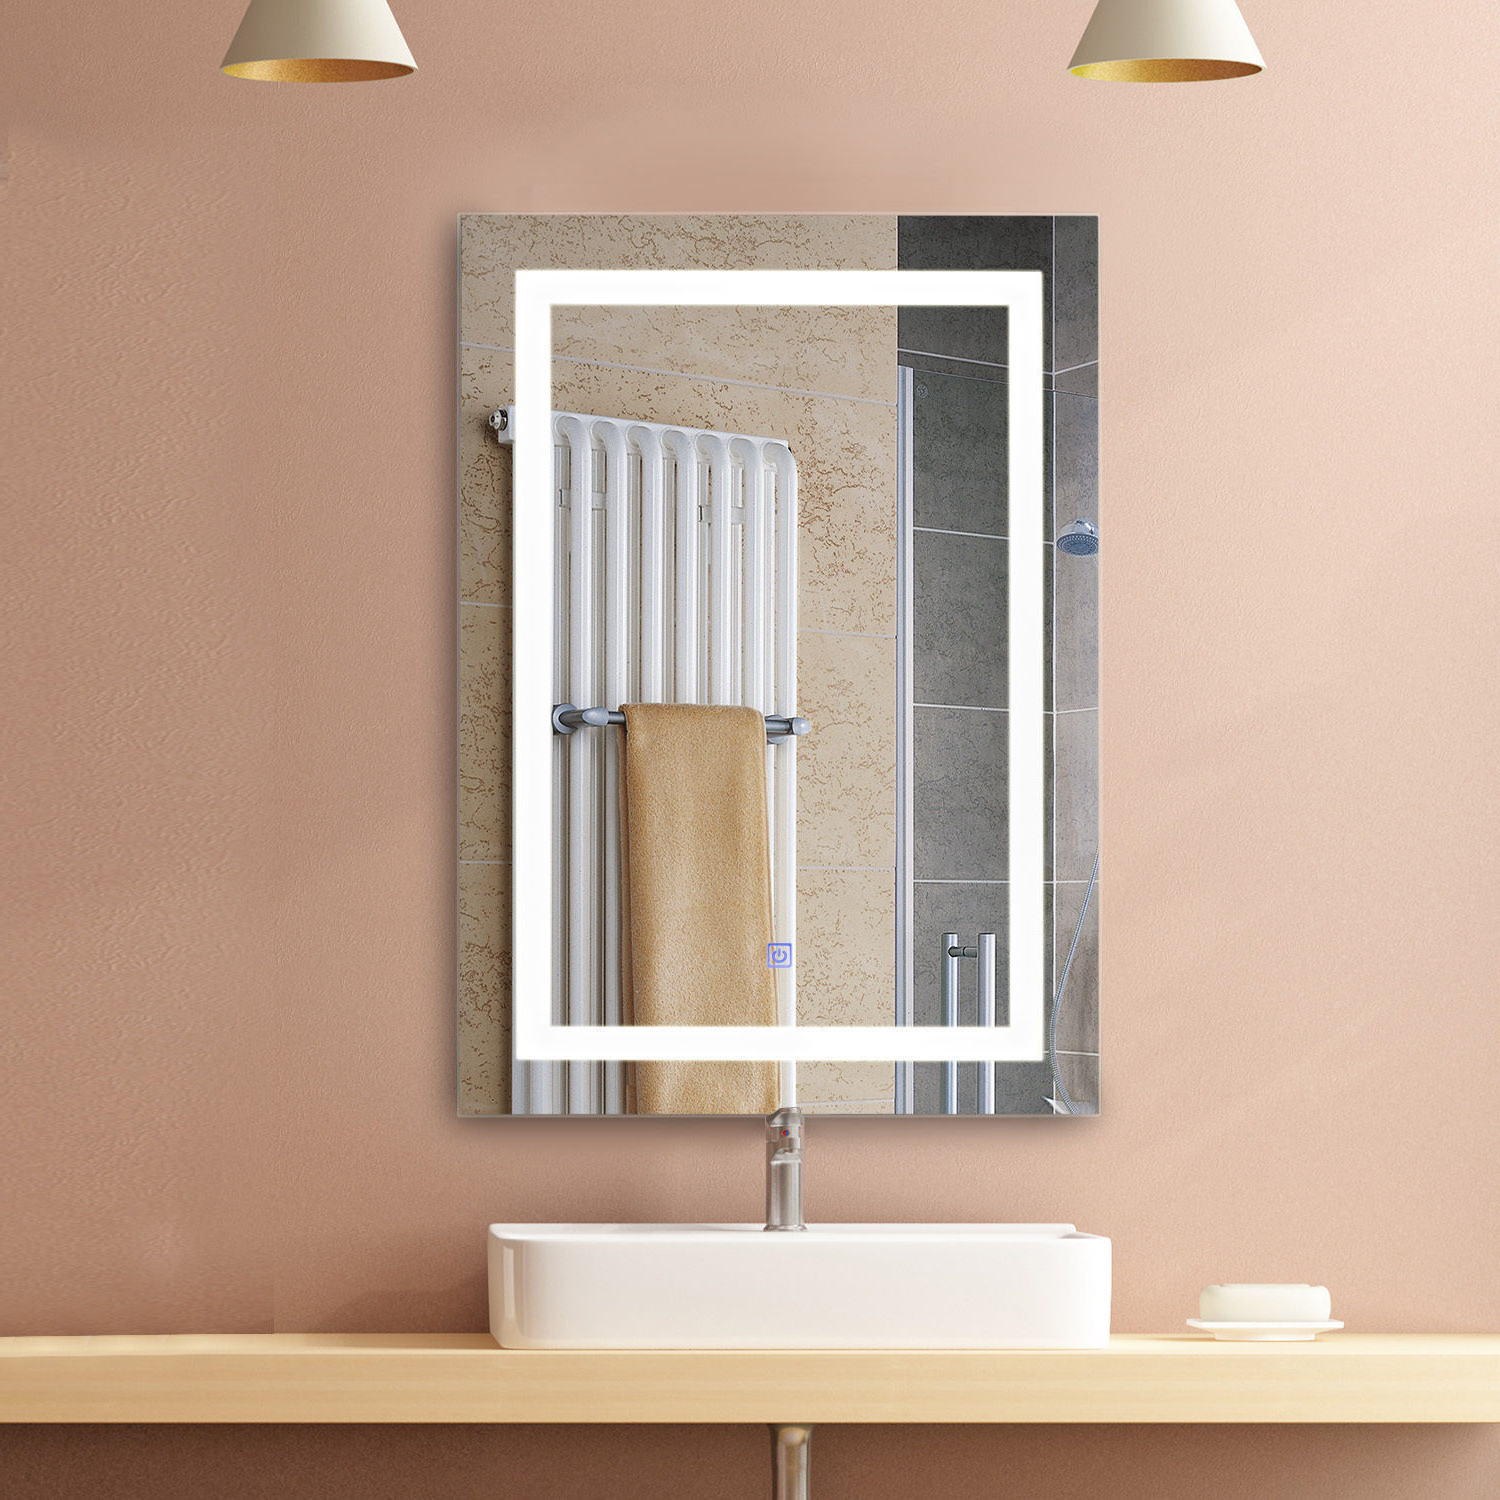 Led Wall Mirrors Regarding Best And Newest Details About Illuminated Led Bathroom Vanity Mirrors With Lights Modern Makeup Wall Mirror (View 10 of 20)